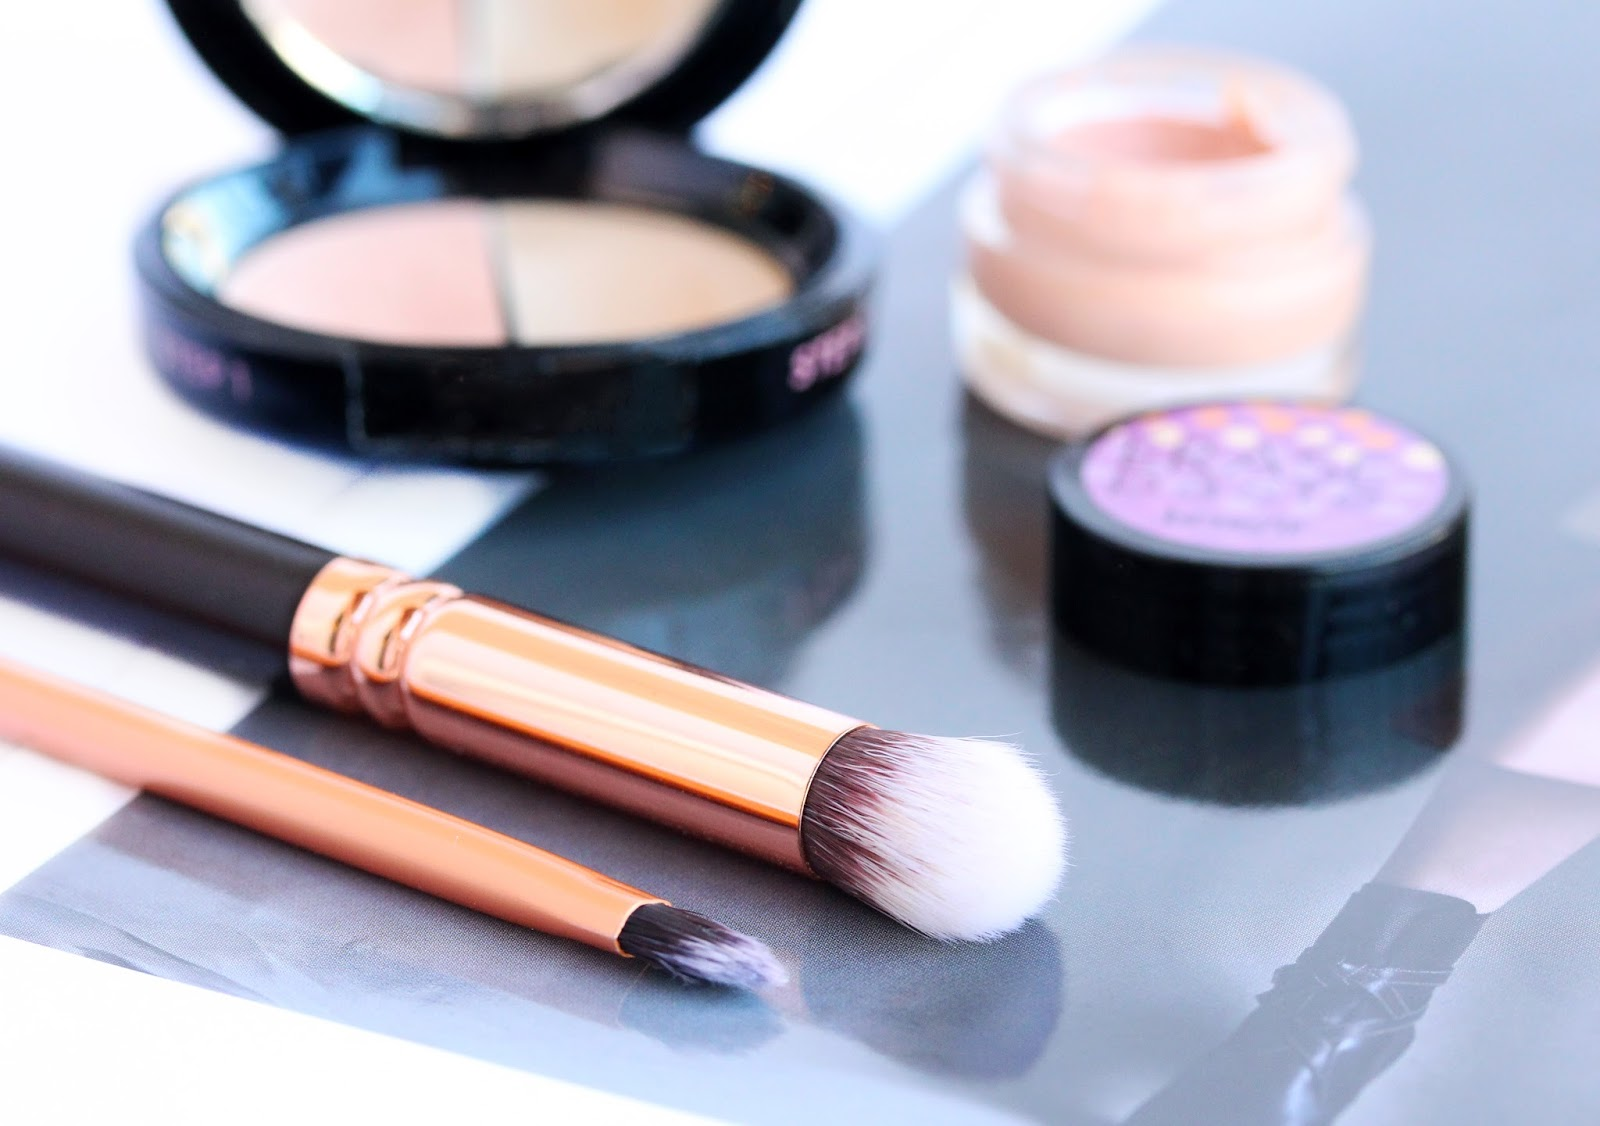 Best Concealer Brushes / Real Techniques Detailer brush and Zoeva Concealer Buffer brush